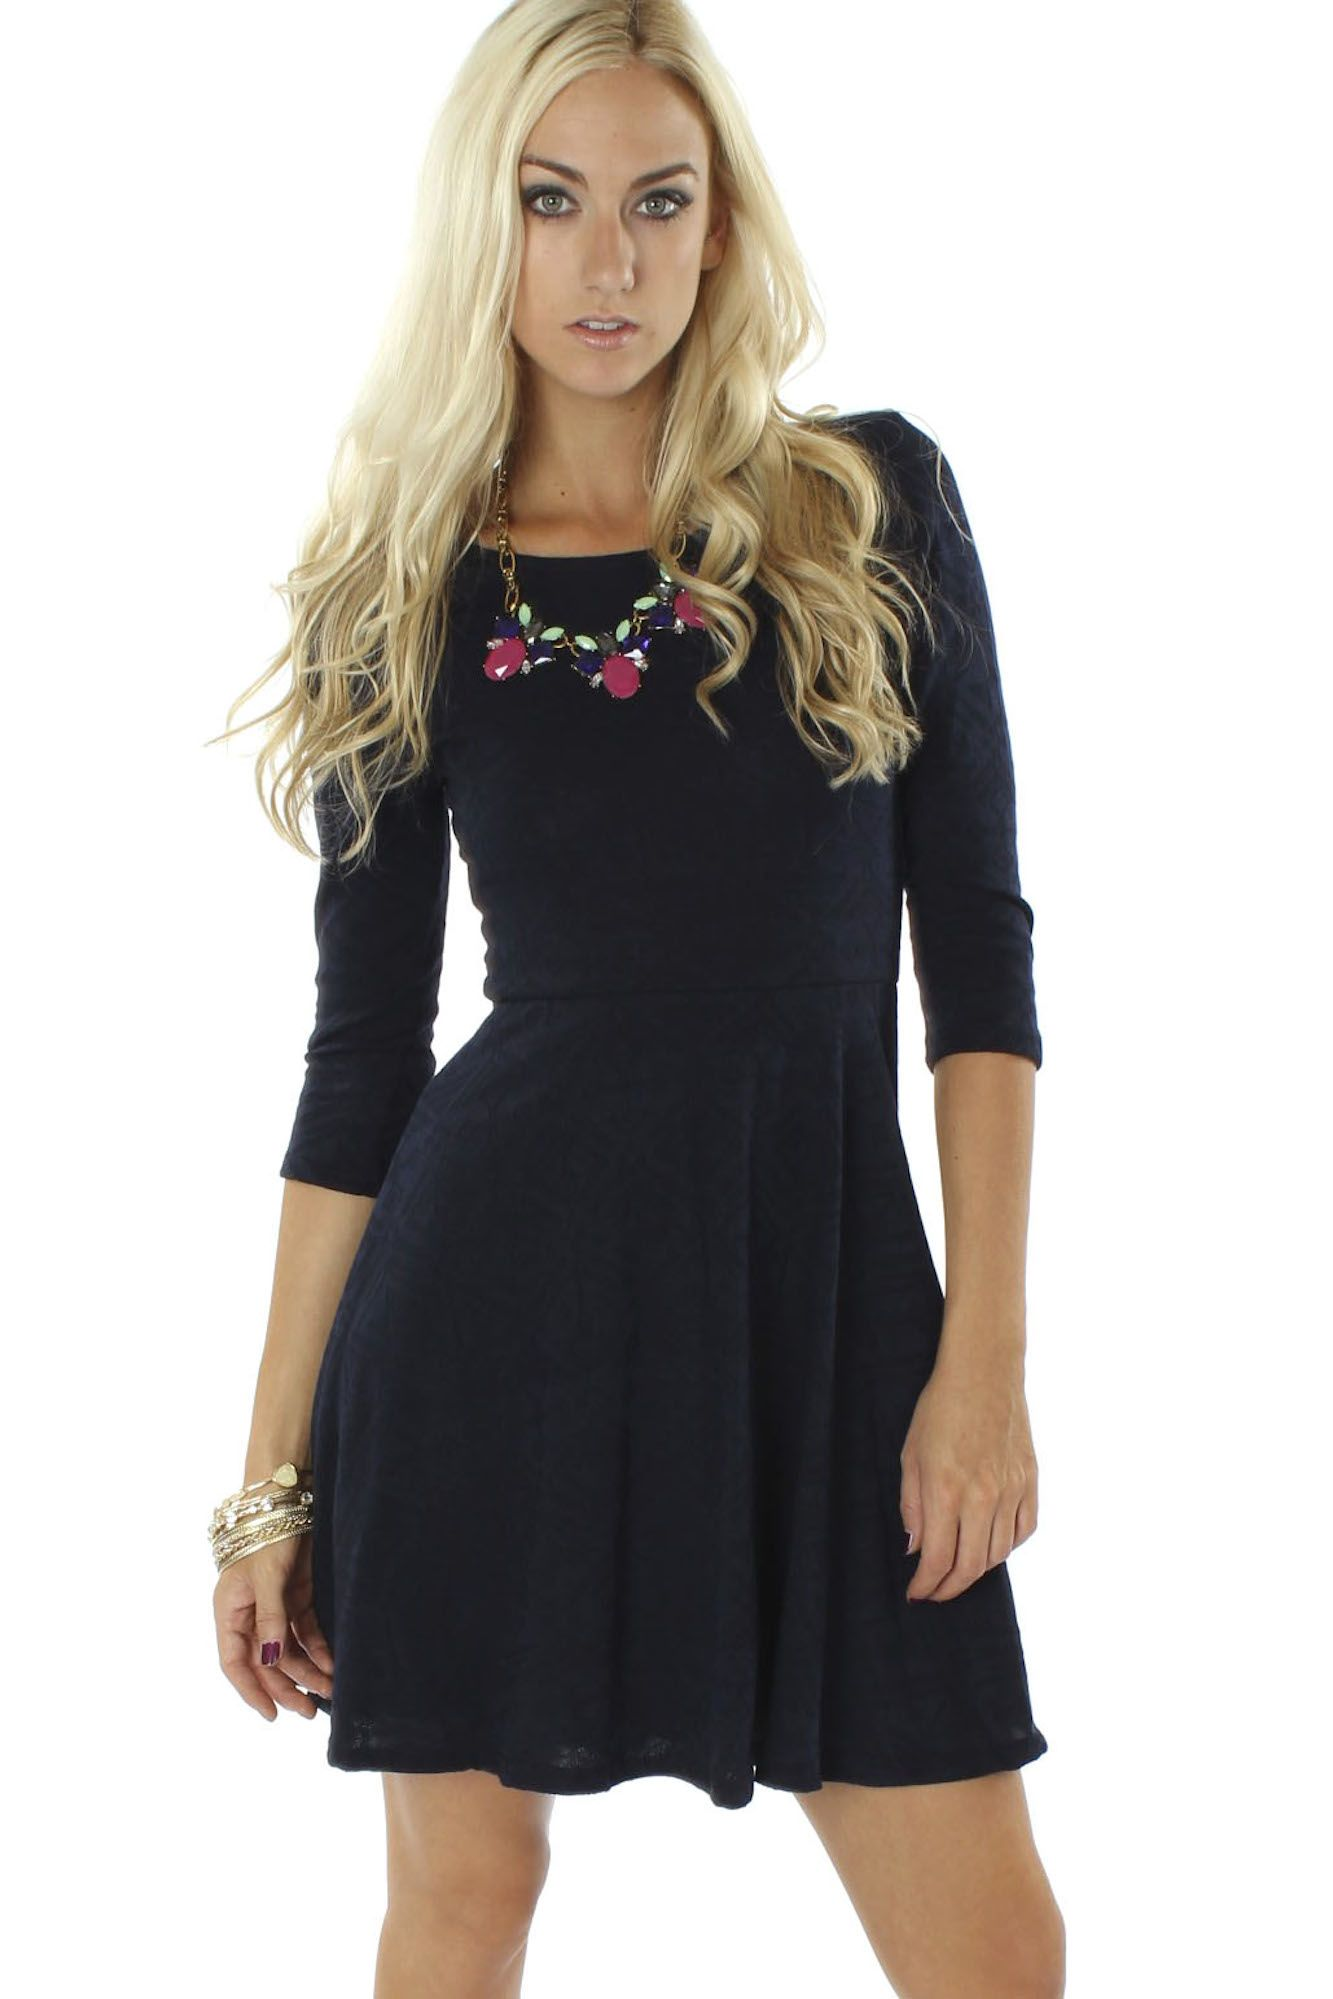 Textured Flare Dress Navy $39.99 #sophieandtrey #dresses #casualdress #quartersleeve #fitnflare #textured